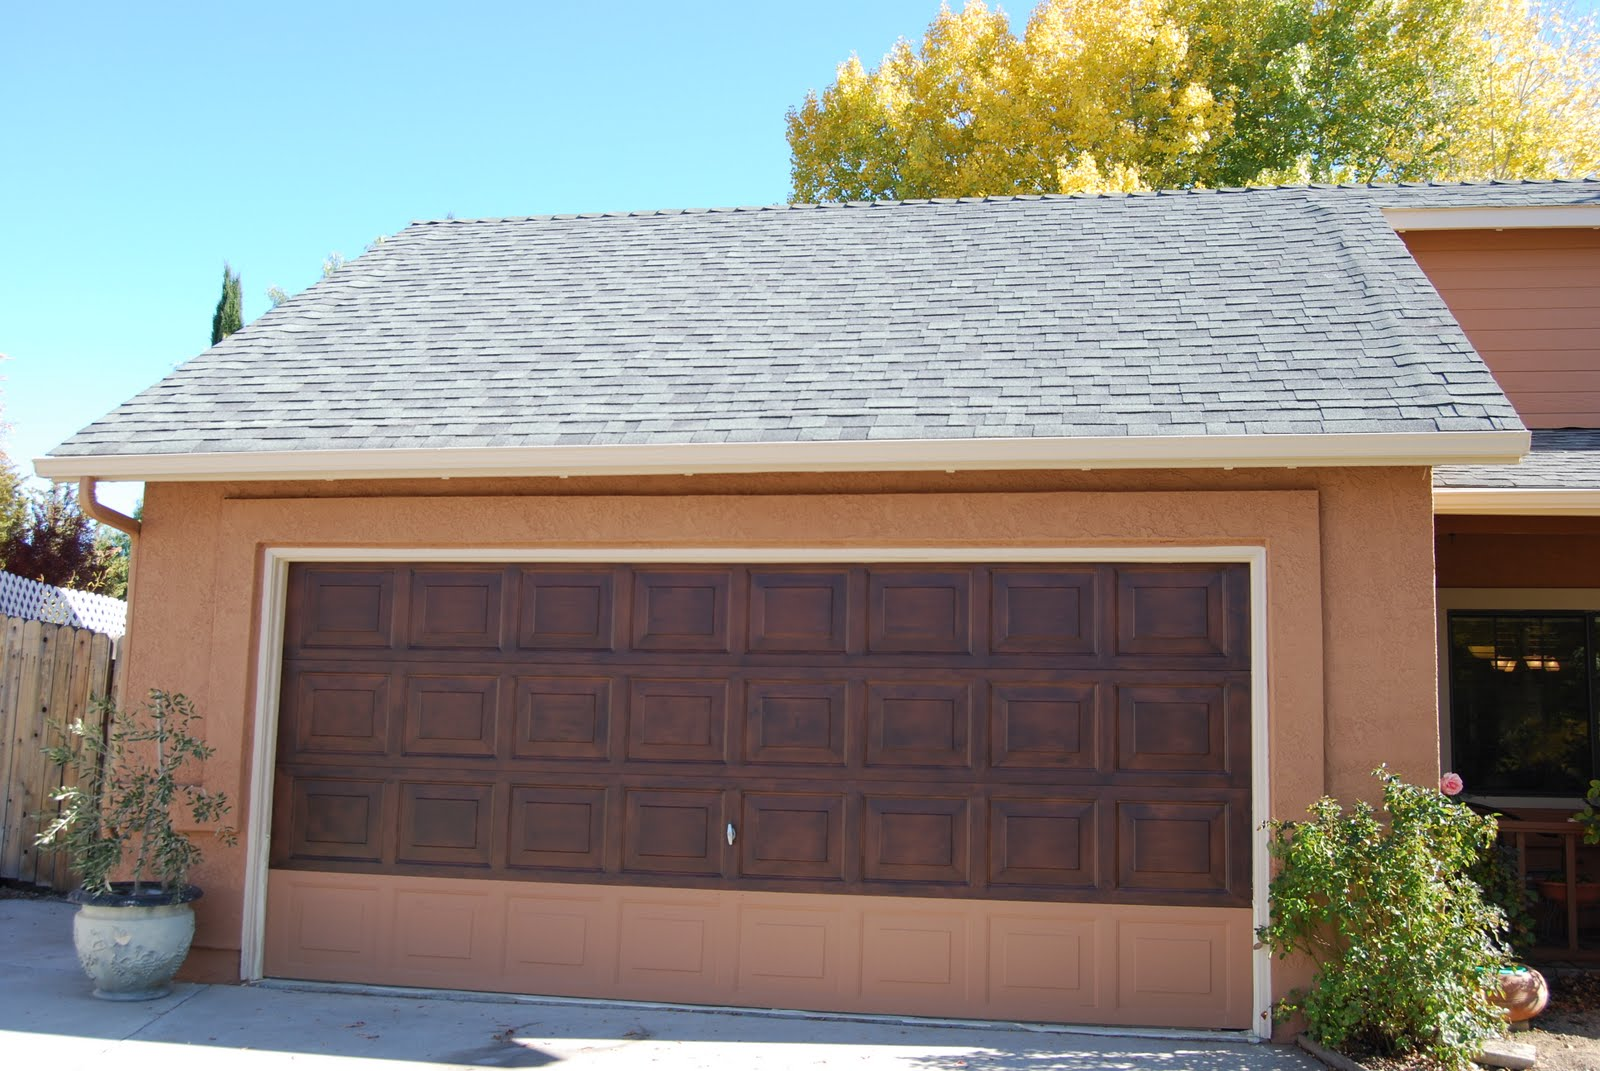 1071 #1687B5 House With Wood Garage Door Wood Garage Doors pic Garage Doors Colors 37511600